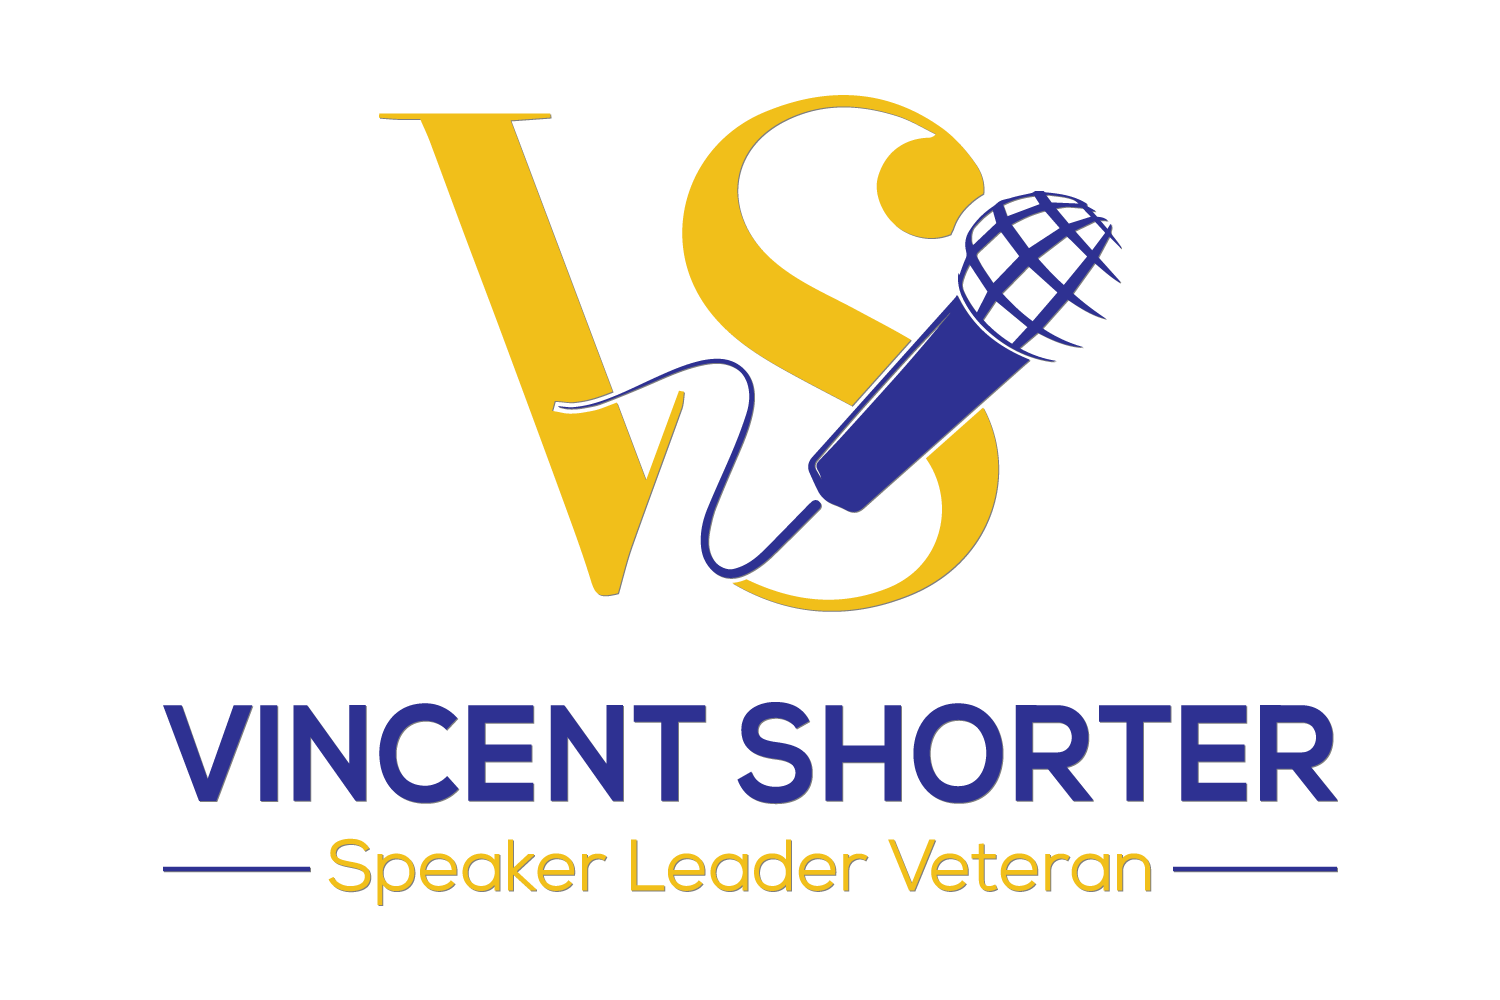 Vincent Shorter Speaker Website